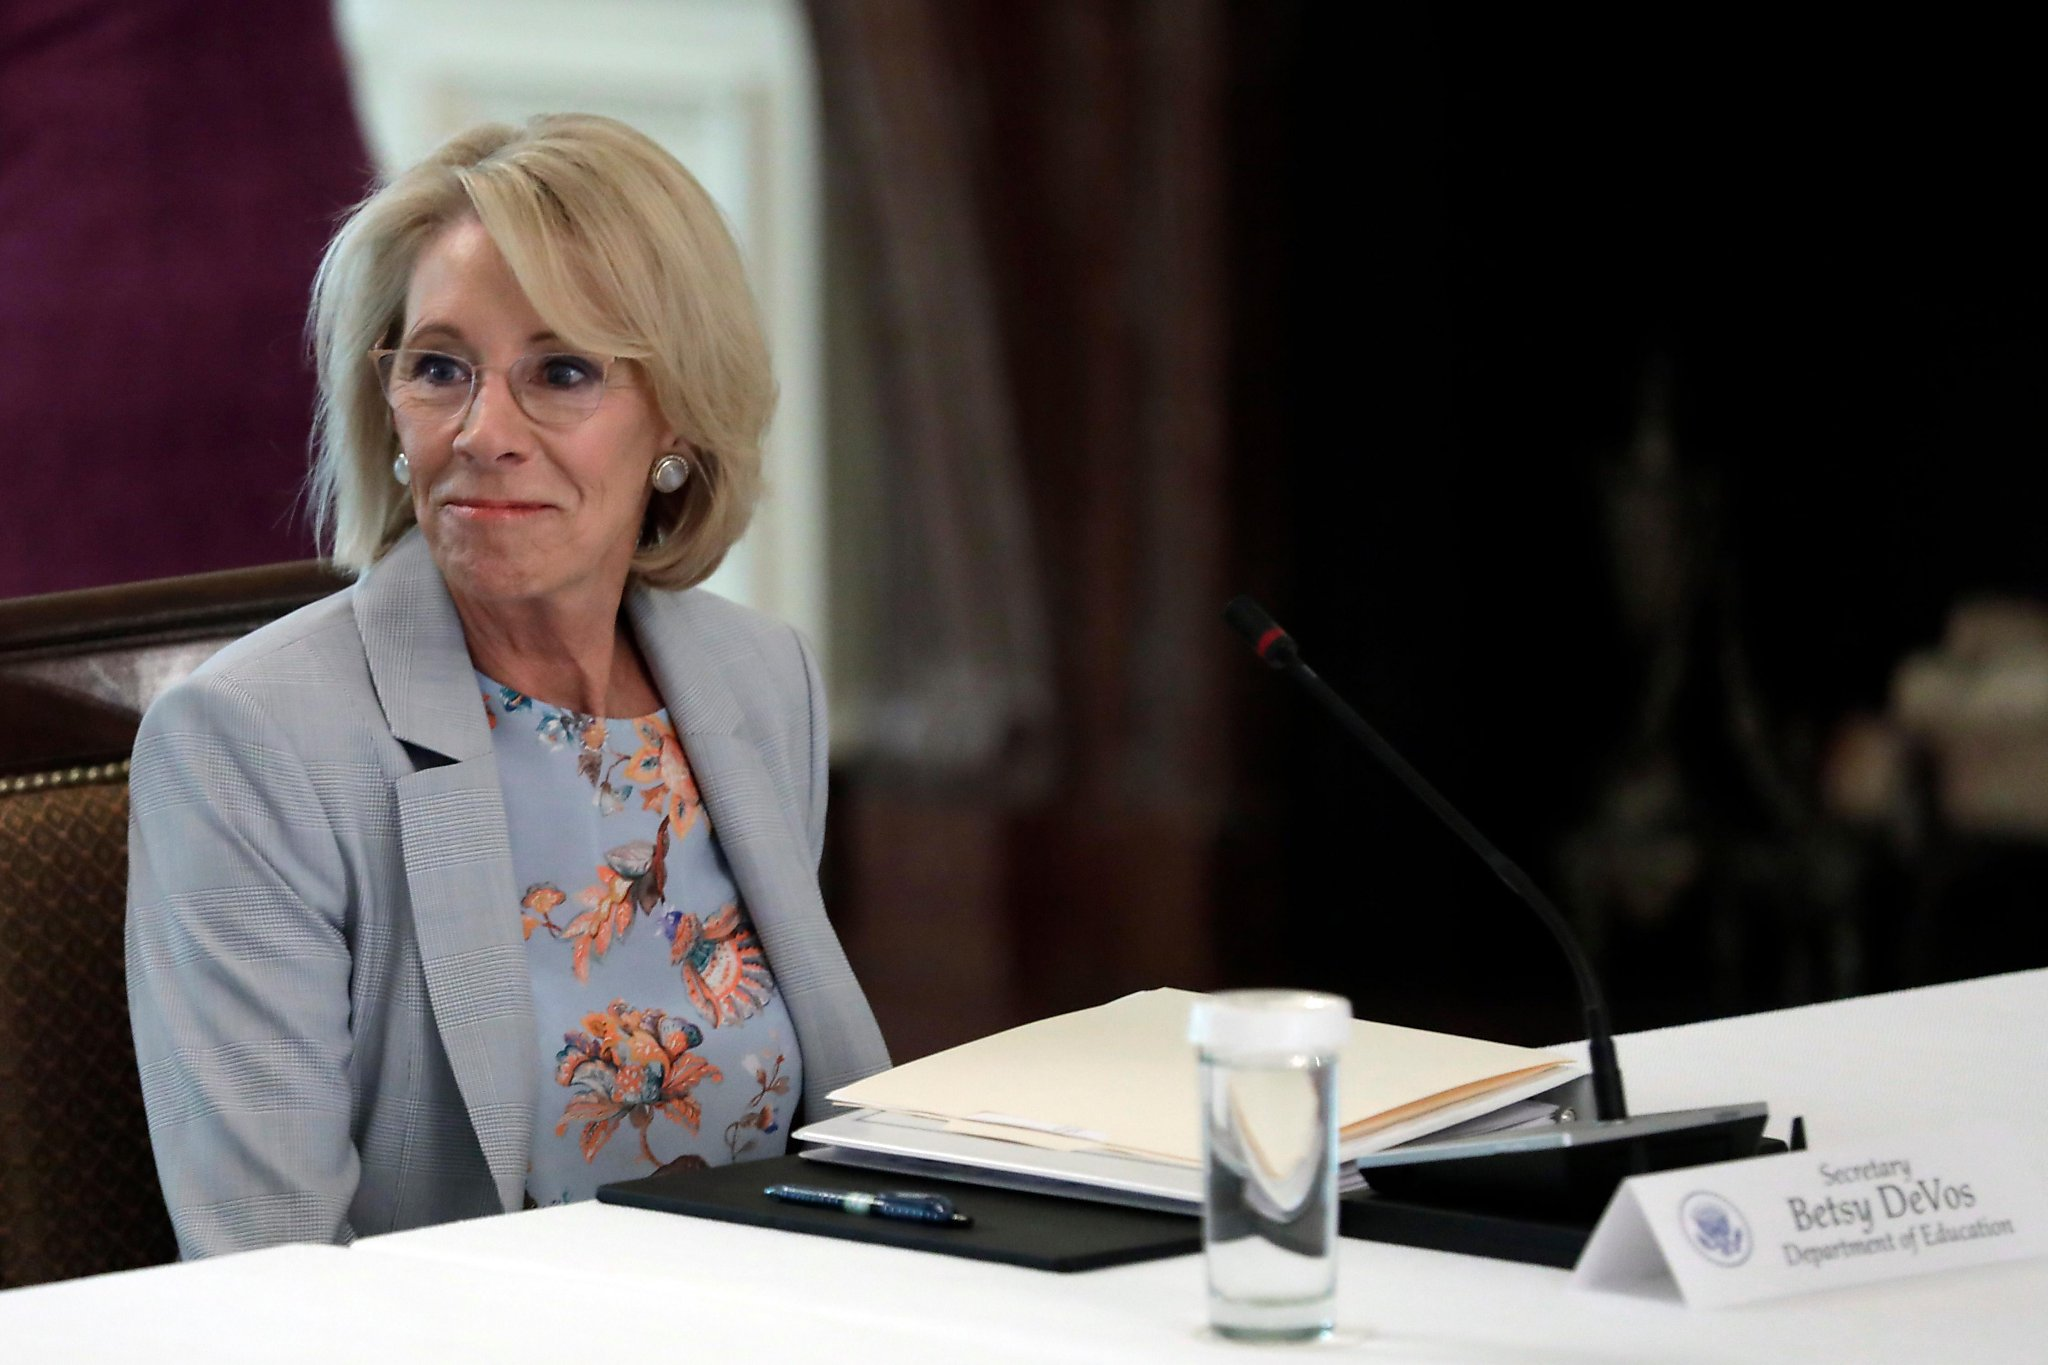 DeVos won't shift COVID relief funds to private schools after multiple losses in court